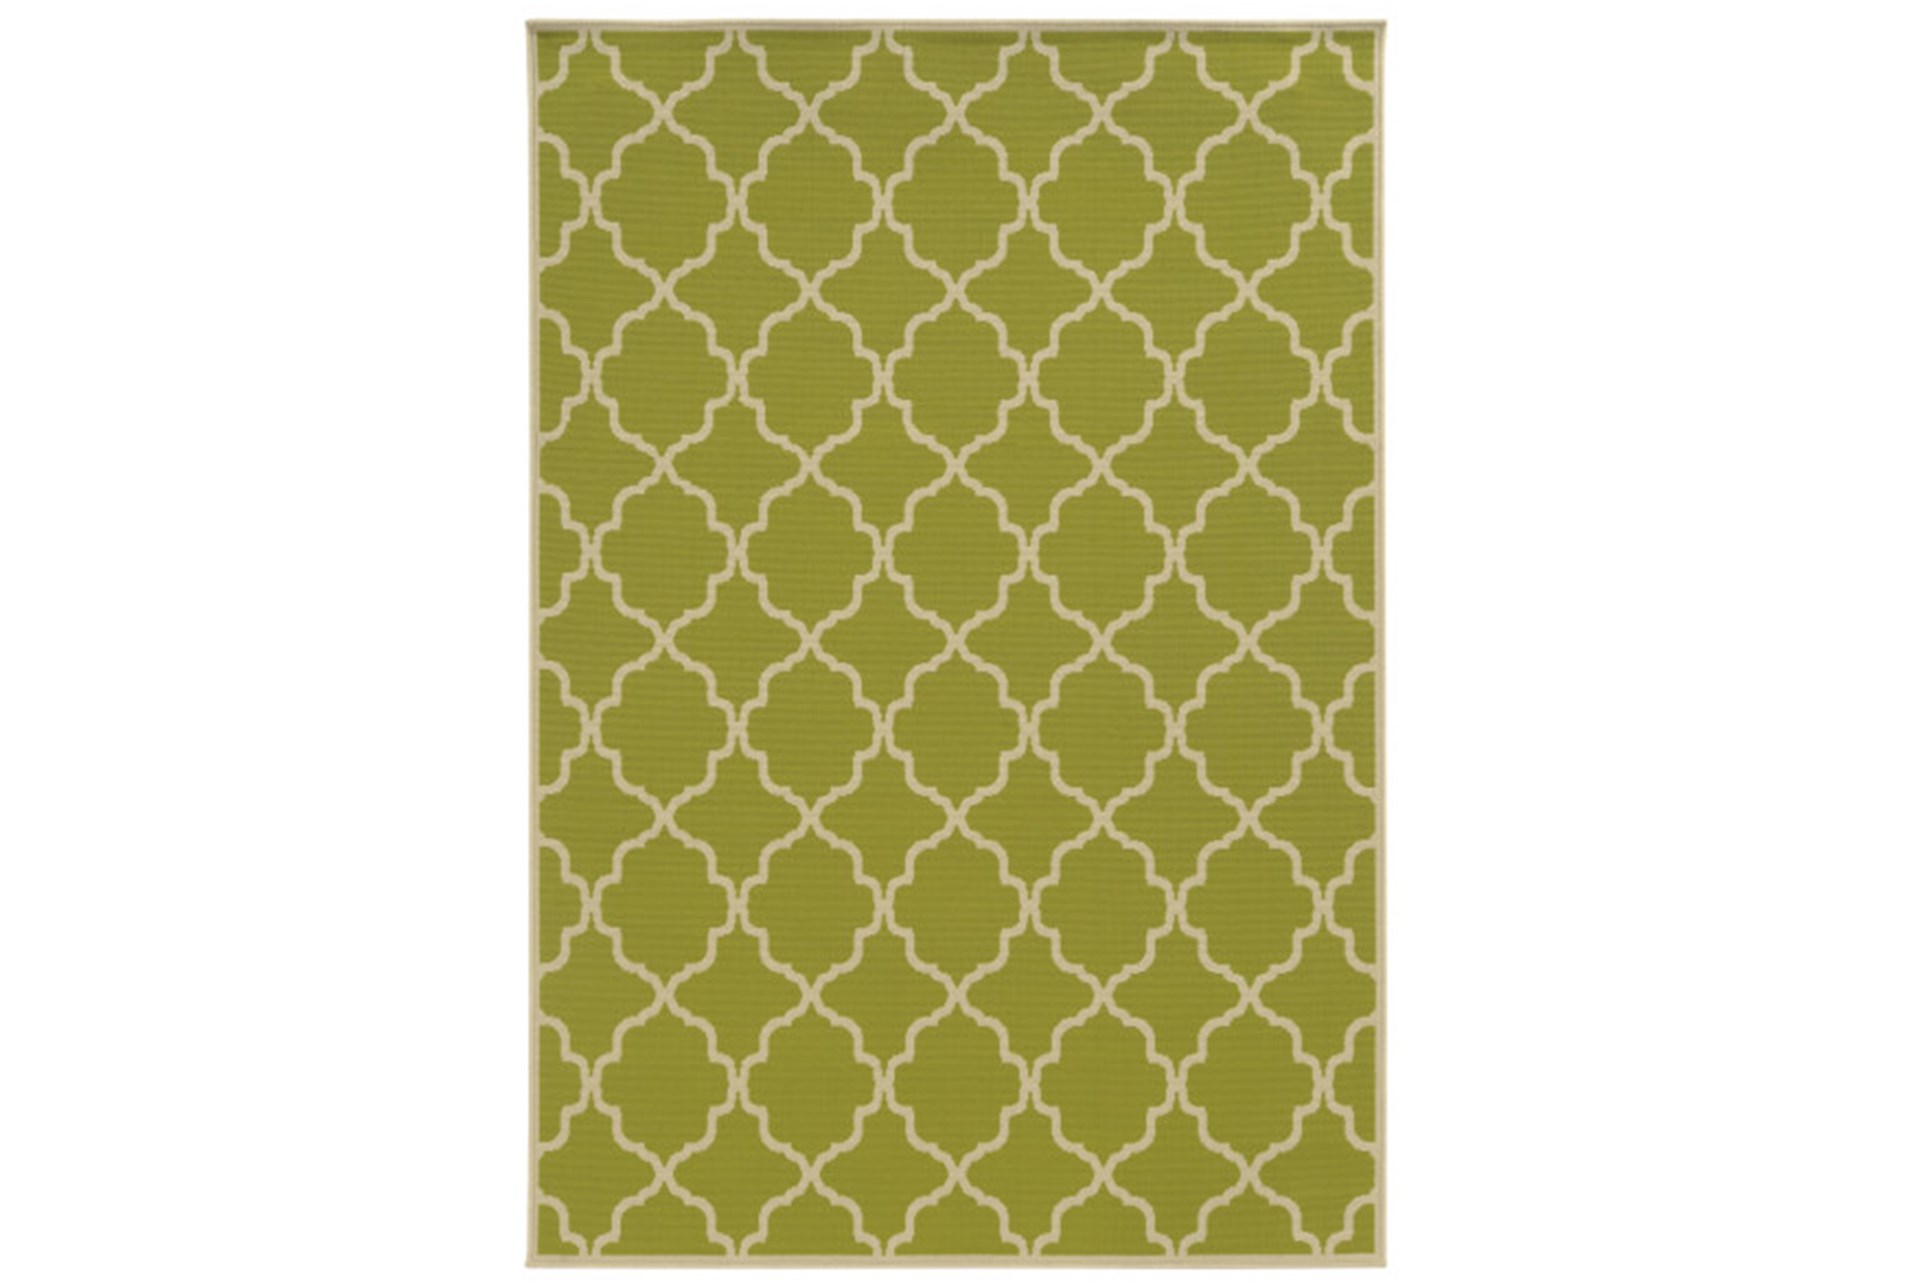 63x90 Outdoor Rug Montauk Lime Qty 1 Has Been Successfully Added To Your Cart